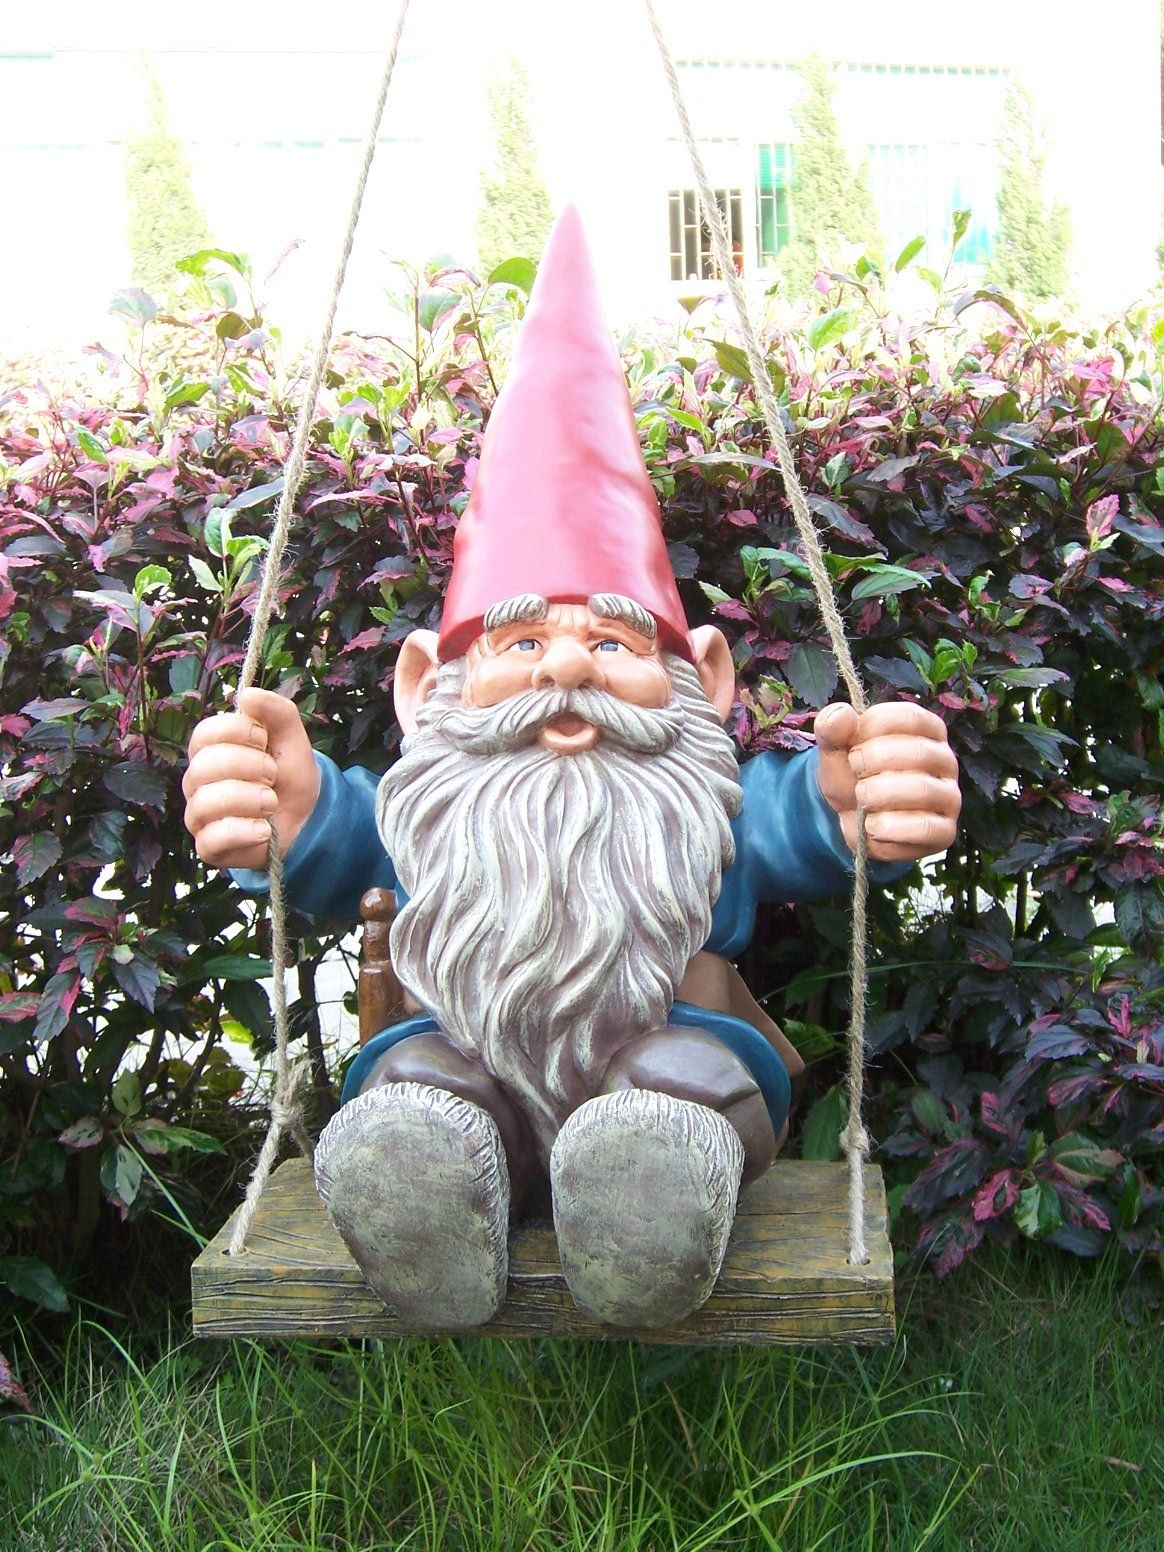 Garden Gnomes - Funny Perverted, Angry, Toilet, Stripper Gnome ...